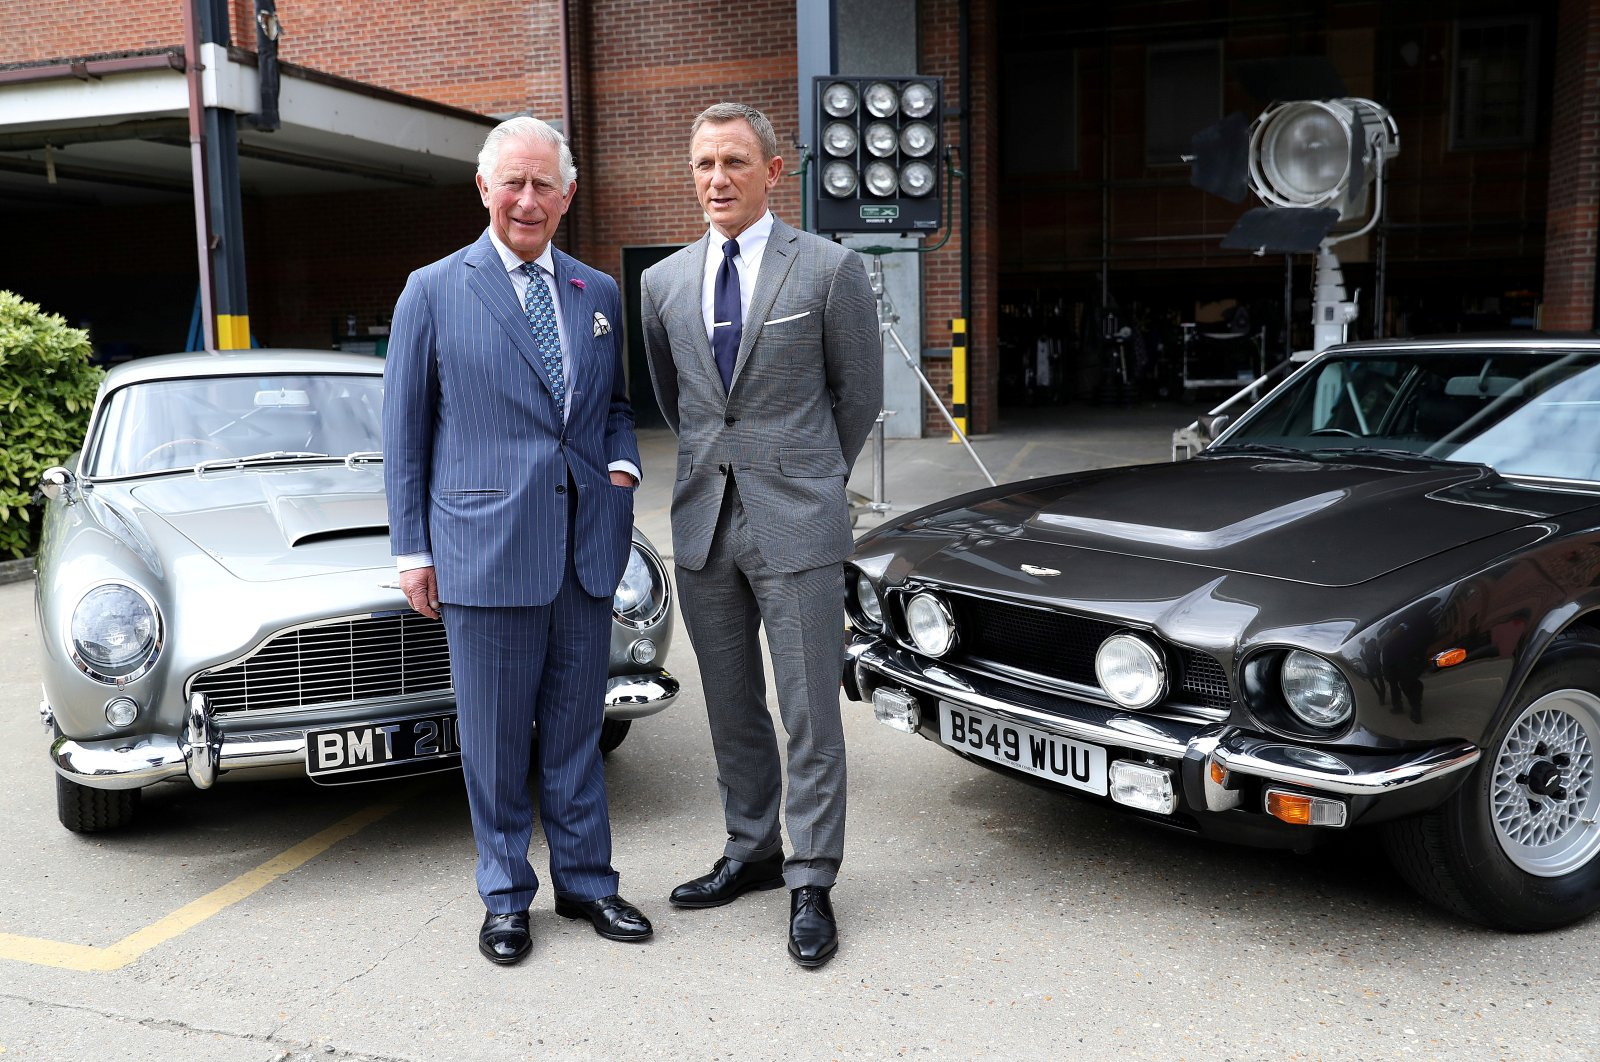 Prince Charles poses with British actor Daniel Craig as he tours the set of the 25th James Bond Film at Pinewood Studios in Iver Heath, Buckinghamshire, Britain June 20, 2019. (REUTERS Photo)